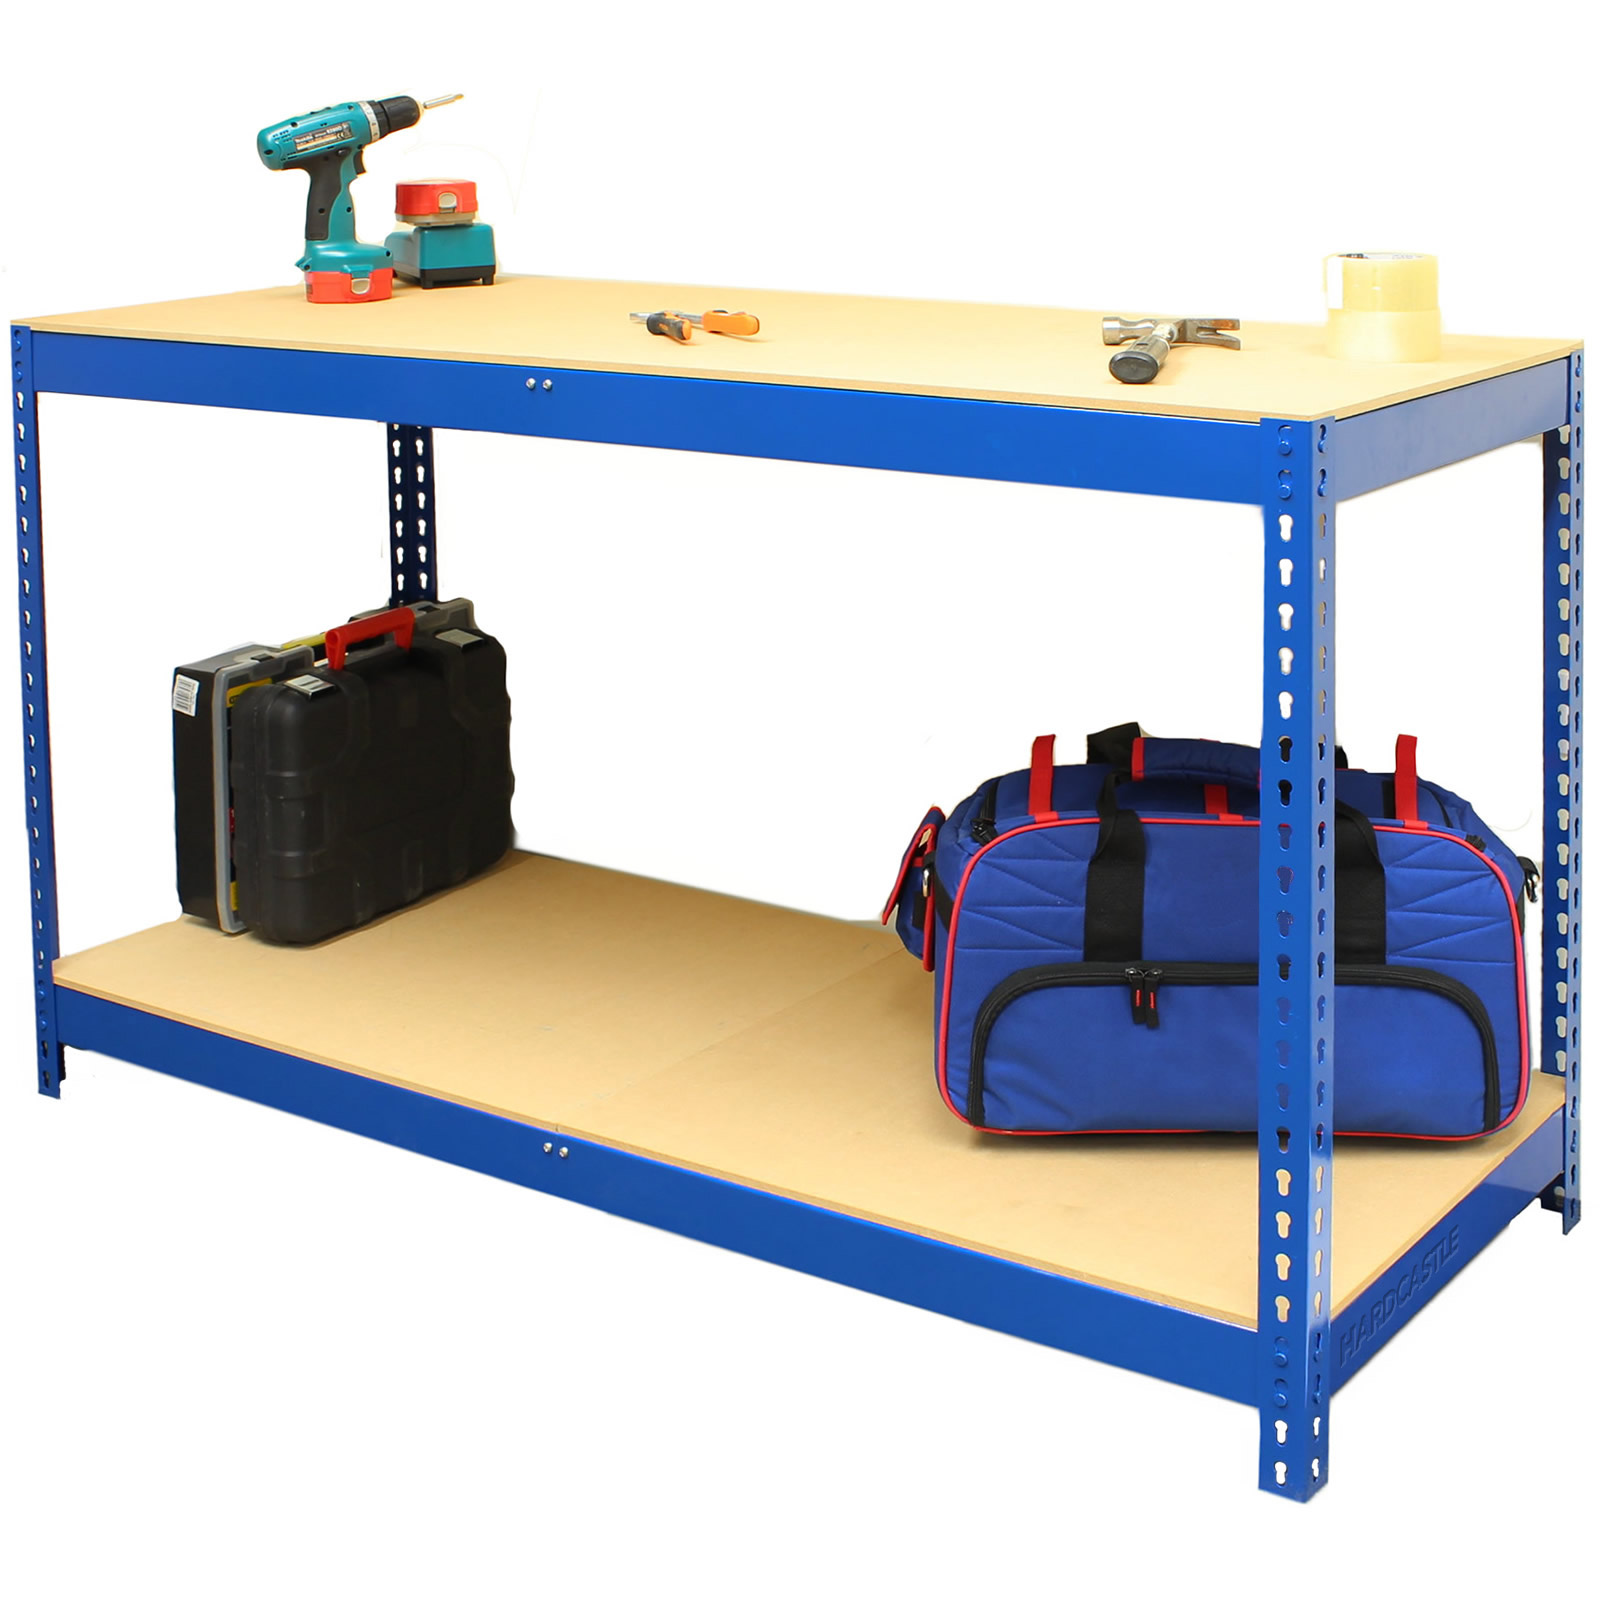 Hardcastle Blue Steel Garage Warehouse Workbench Table